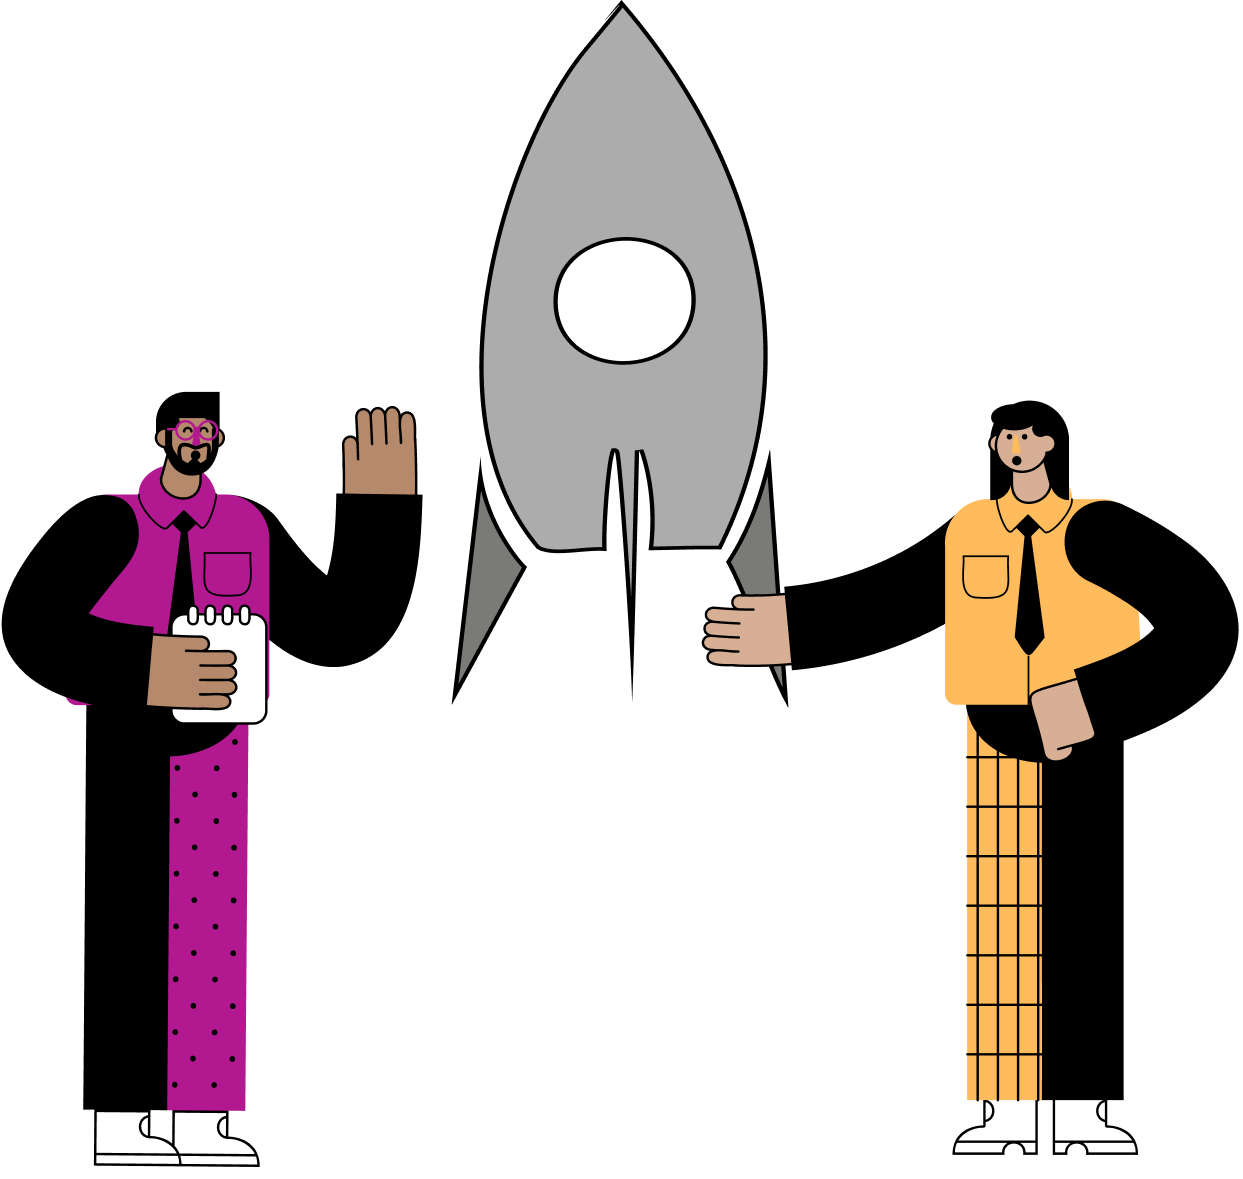 Illustration of two people standing in front of a rocket blasting off to symbolize launching a startup.